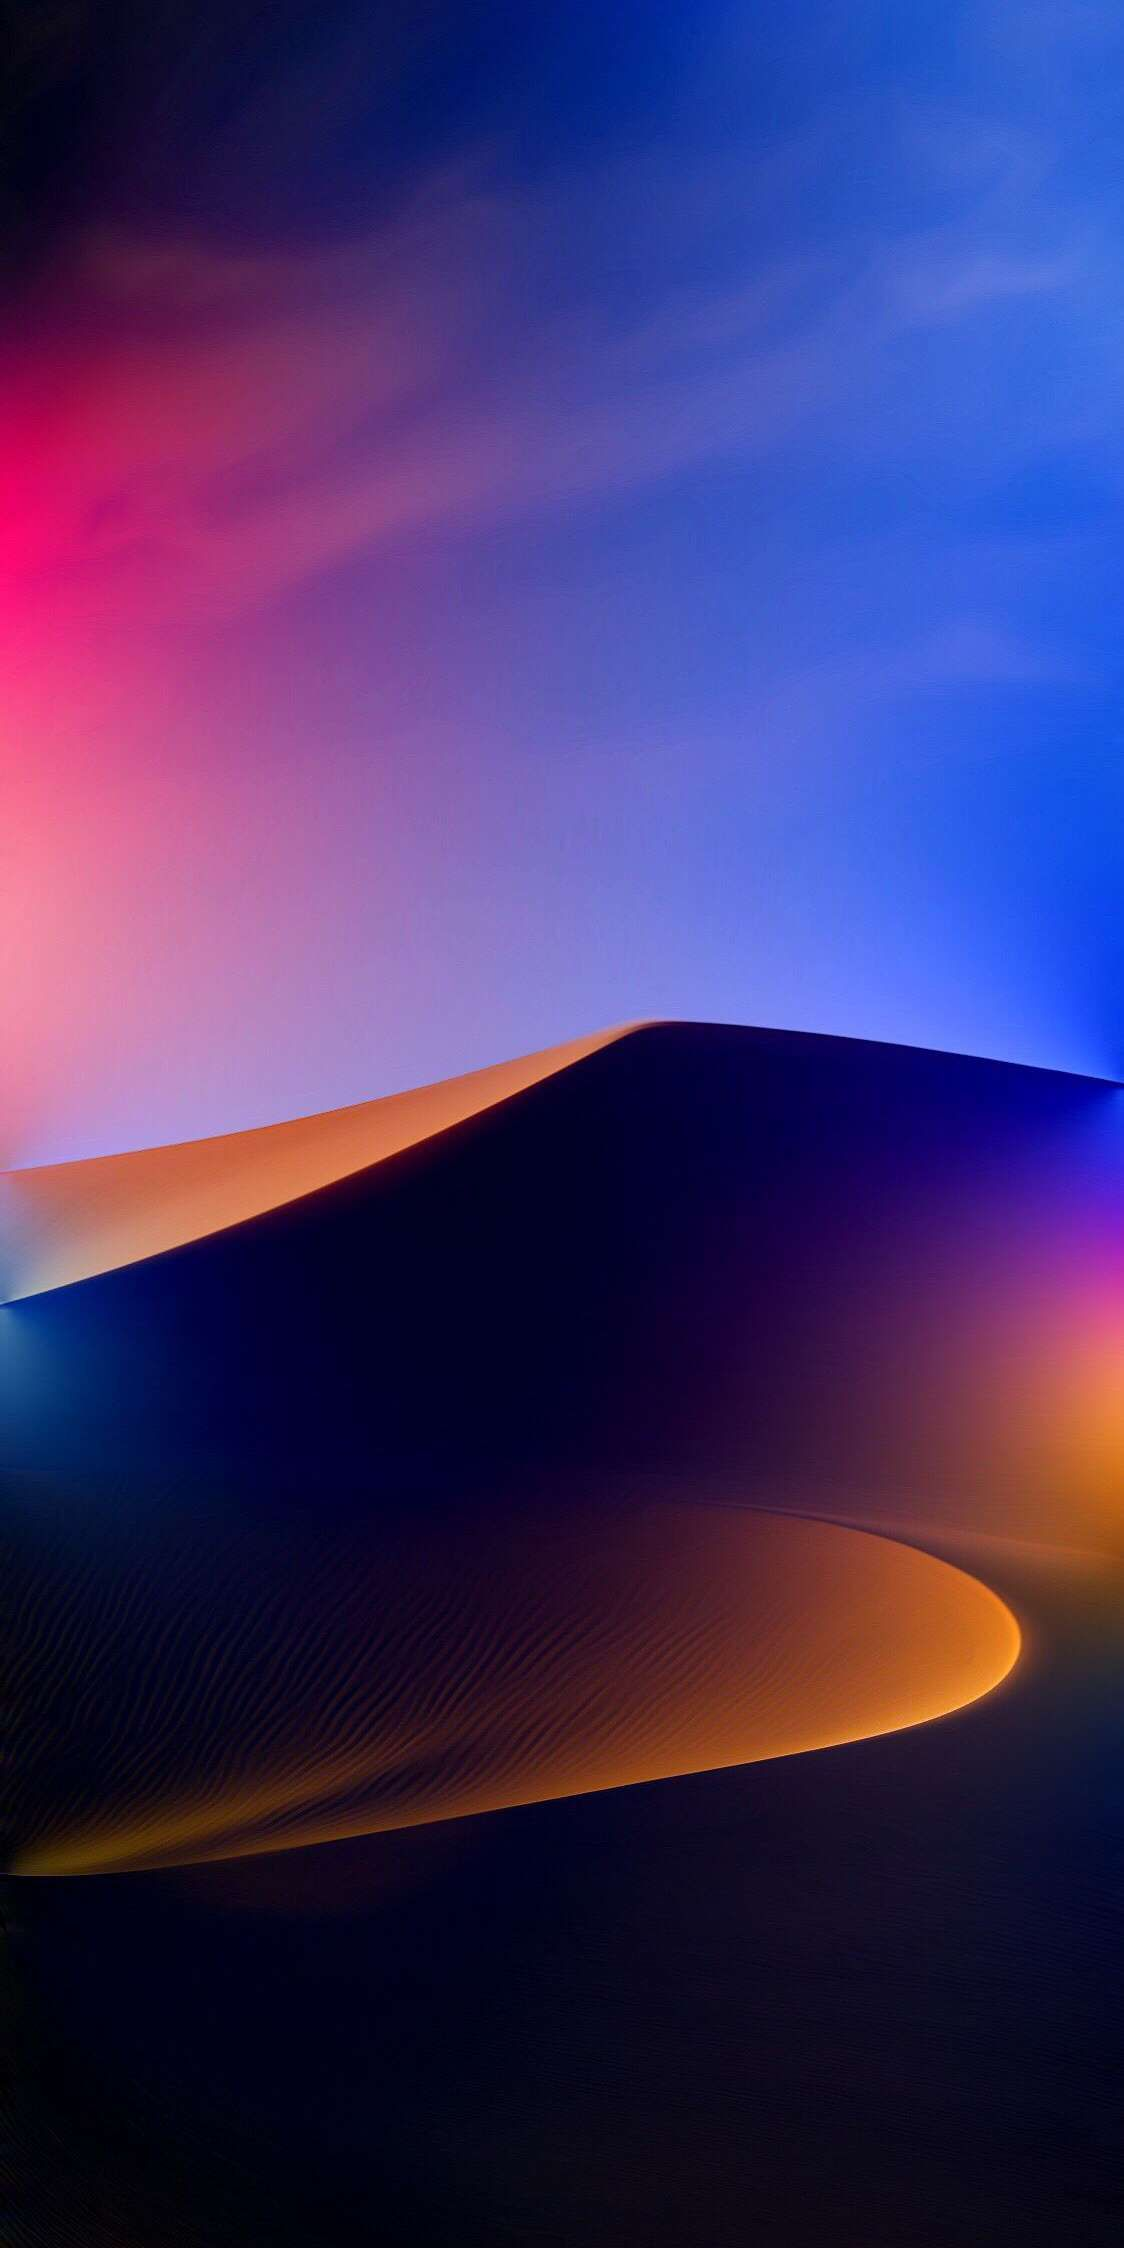 Gradient Desert iPhone Wallpaper from iphoneswallpapers.com